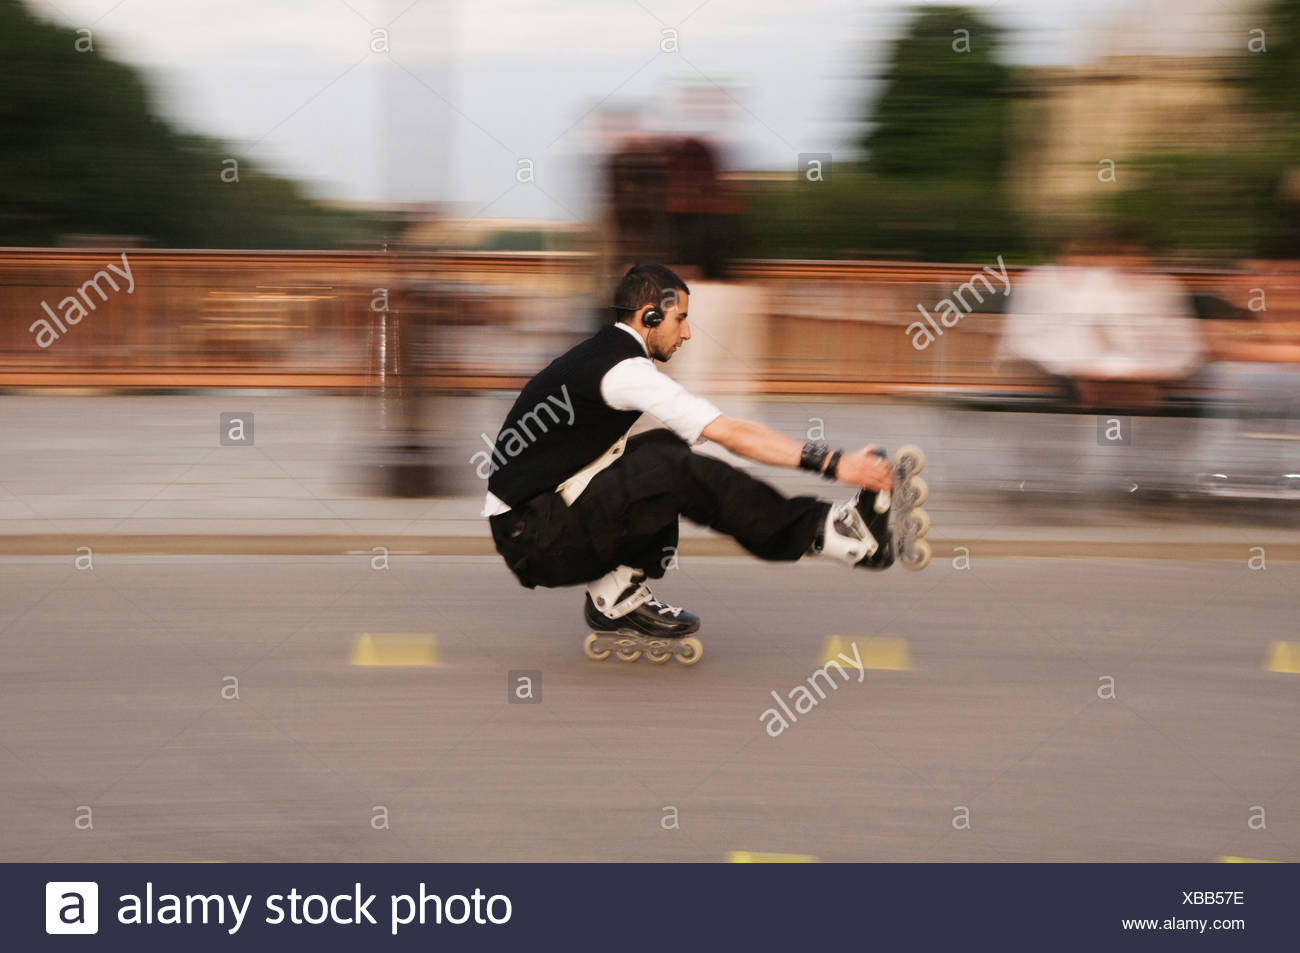 skater driving crouched on one leg, with headphones, France, Paris, Ile de France - Stock Image